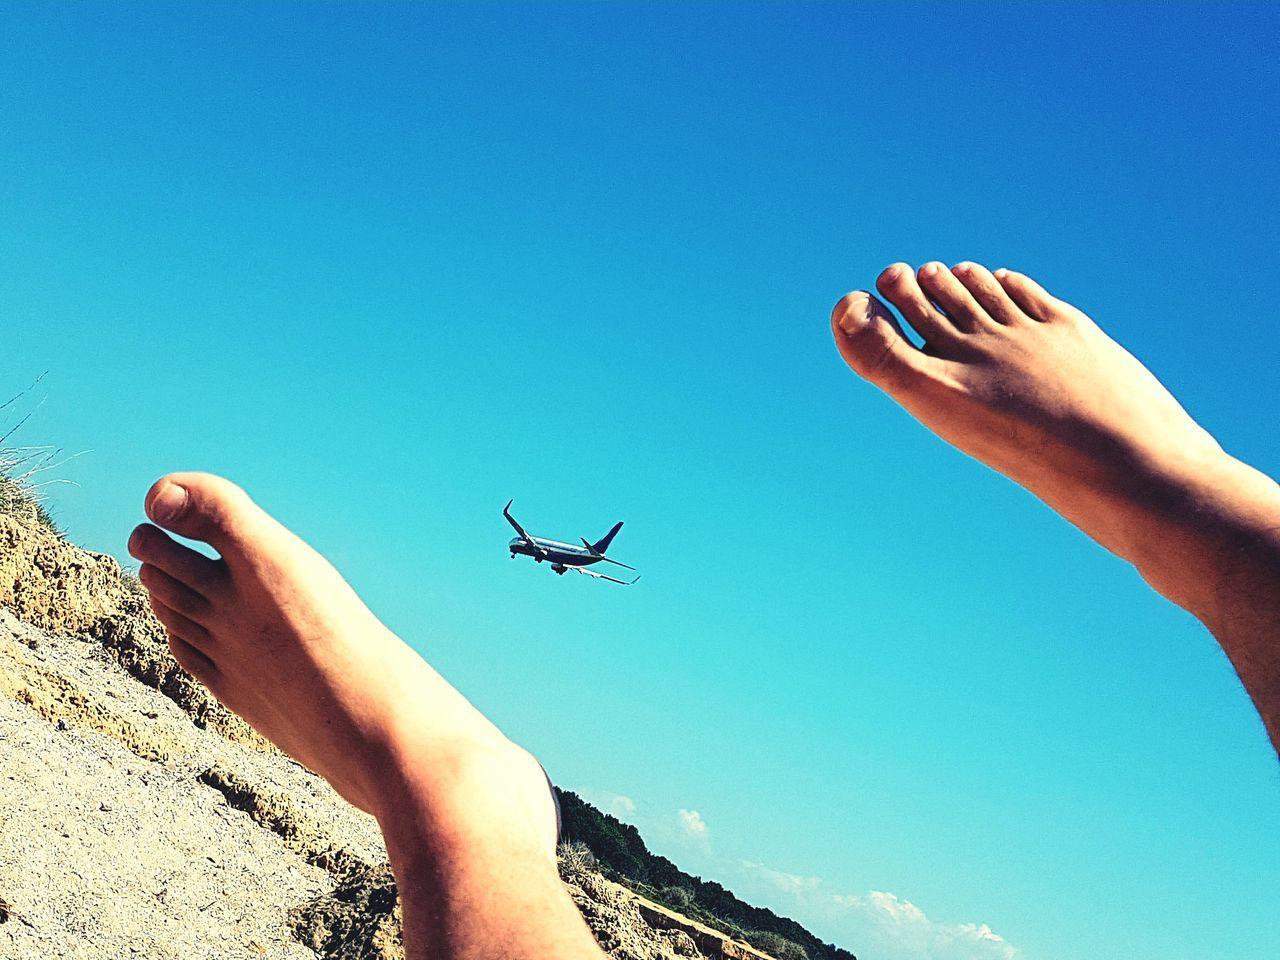 Human Body Part Summer Flying Sky Outdoors Aeroplane Aeroplane In The Sky Aeroplane Photography Feet Photooftheday Españoles Y Sus Fotos Non-urban Scene